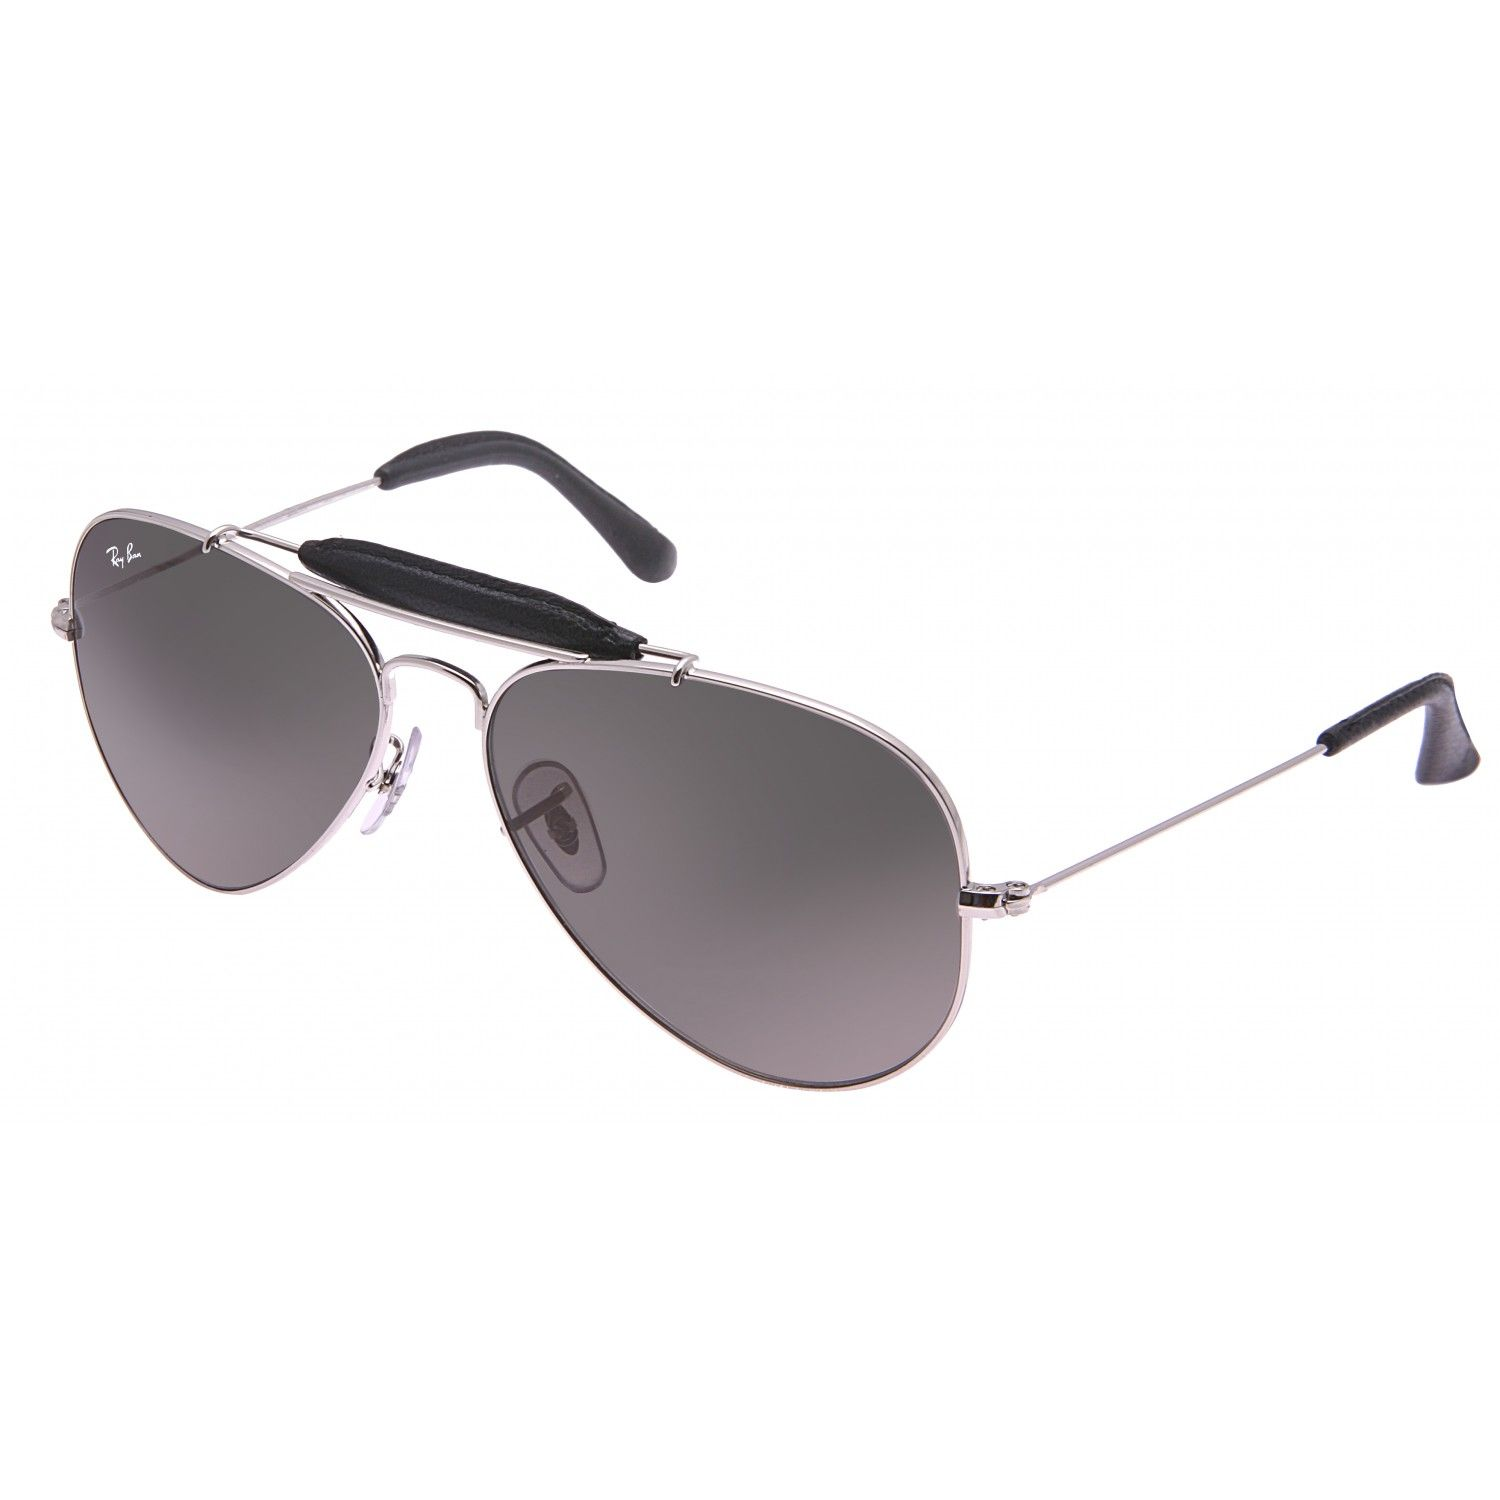 69826c542195 Best Deal On Ray Ban Sunglasses « One More Soul